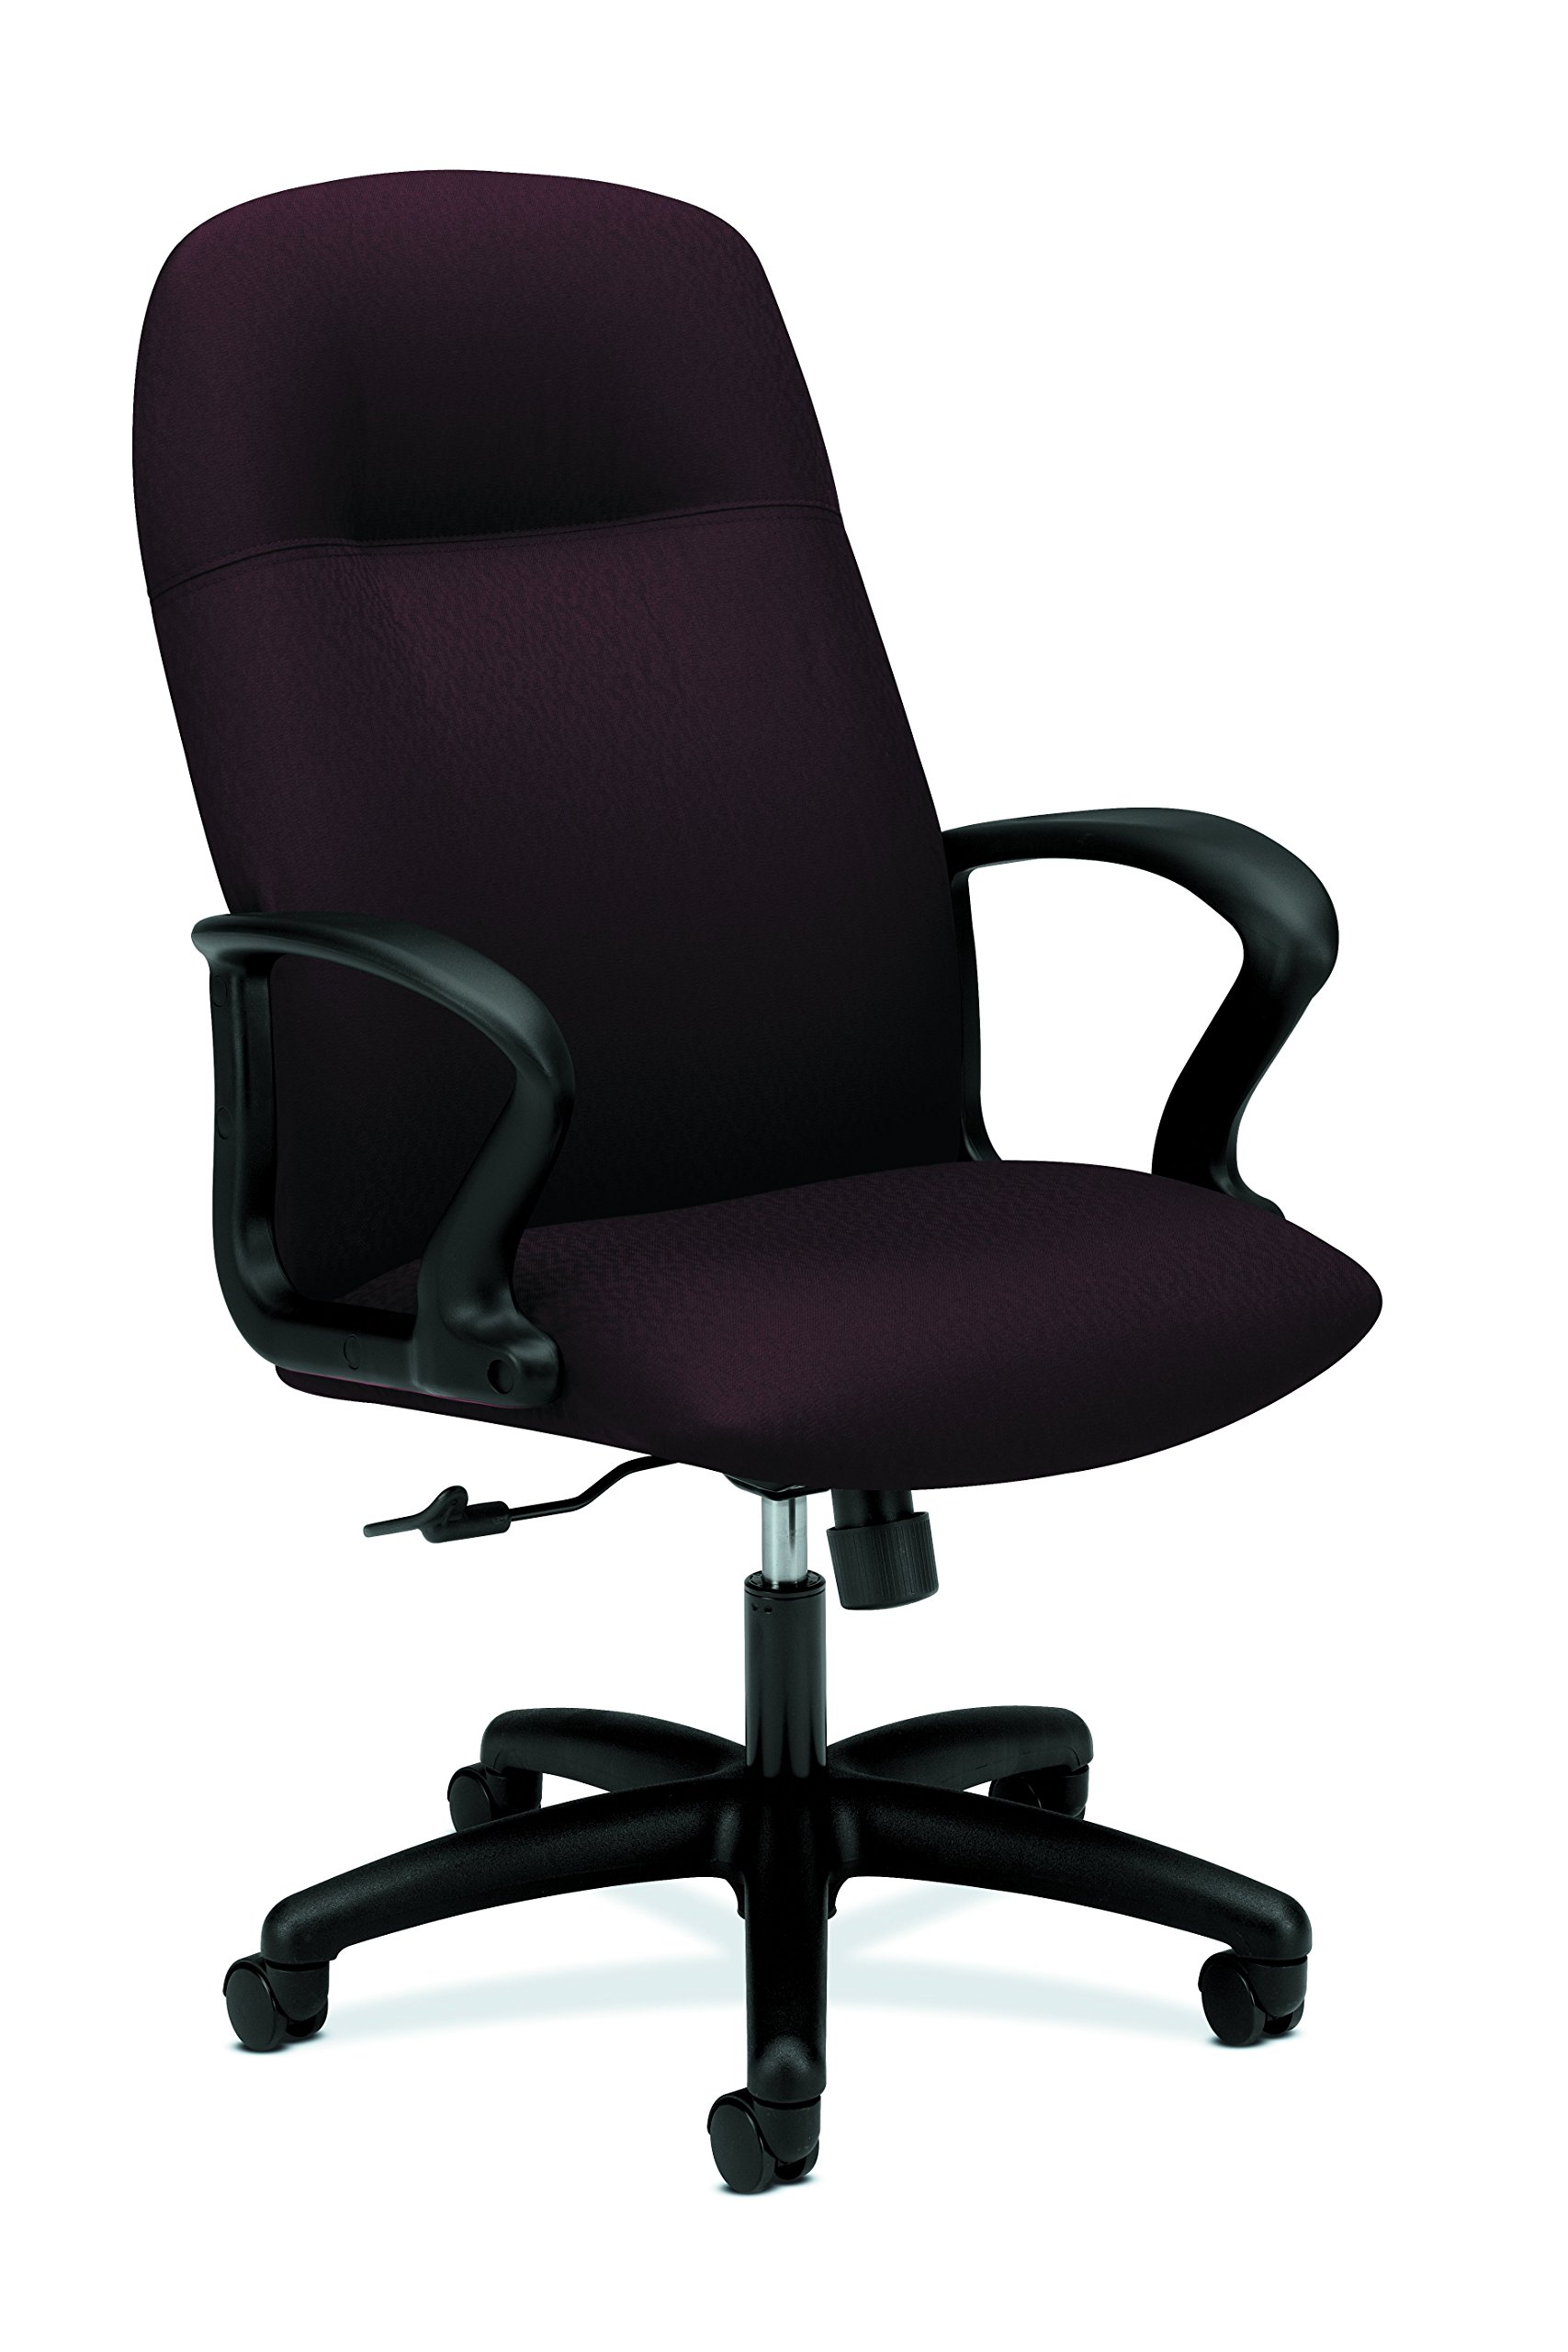 HON Gamut Executive Chair - High-Back Office Chair for Computer Desk (H2071)